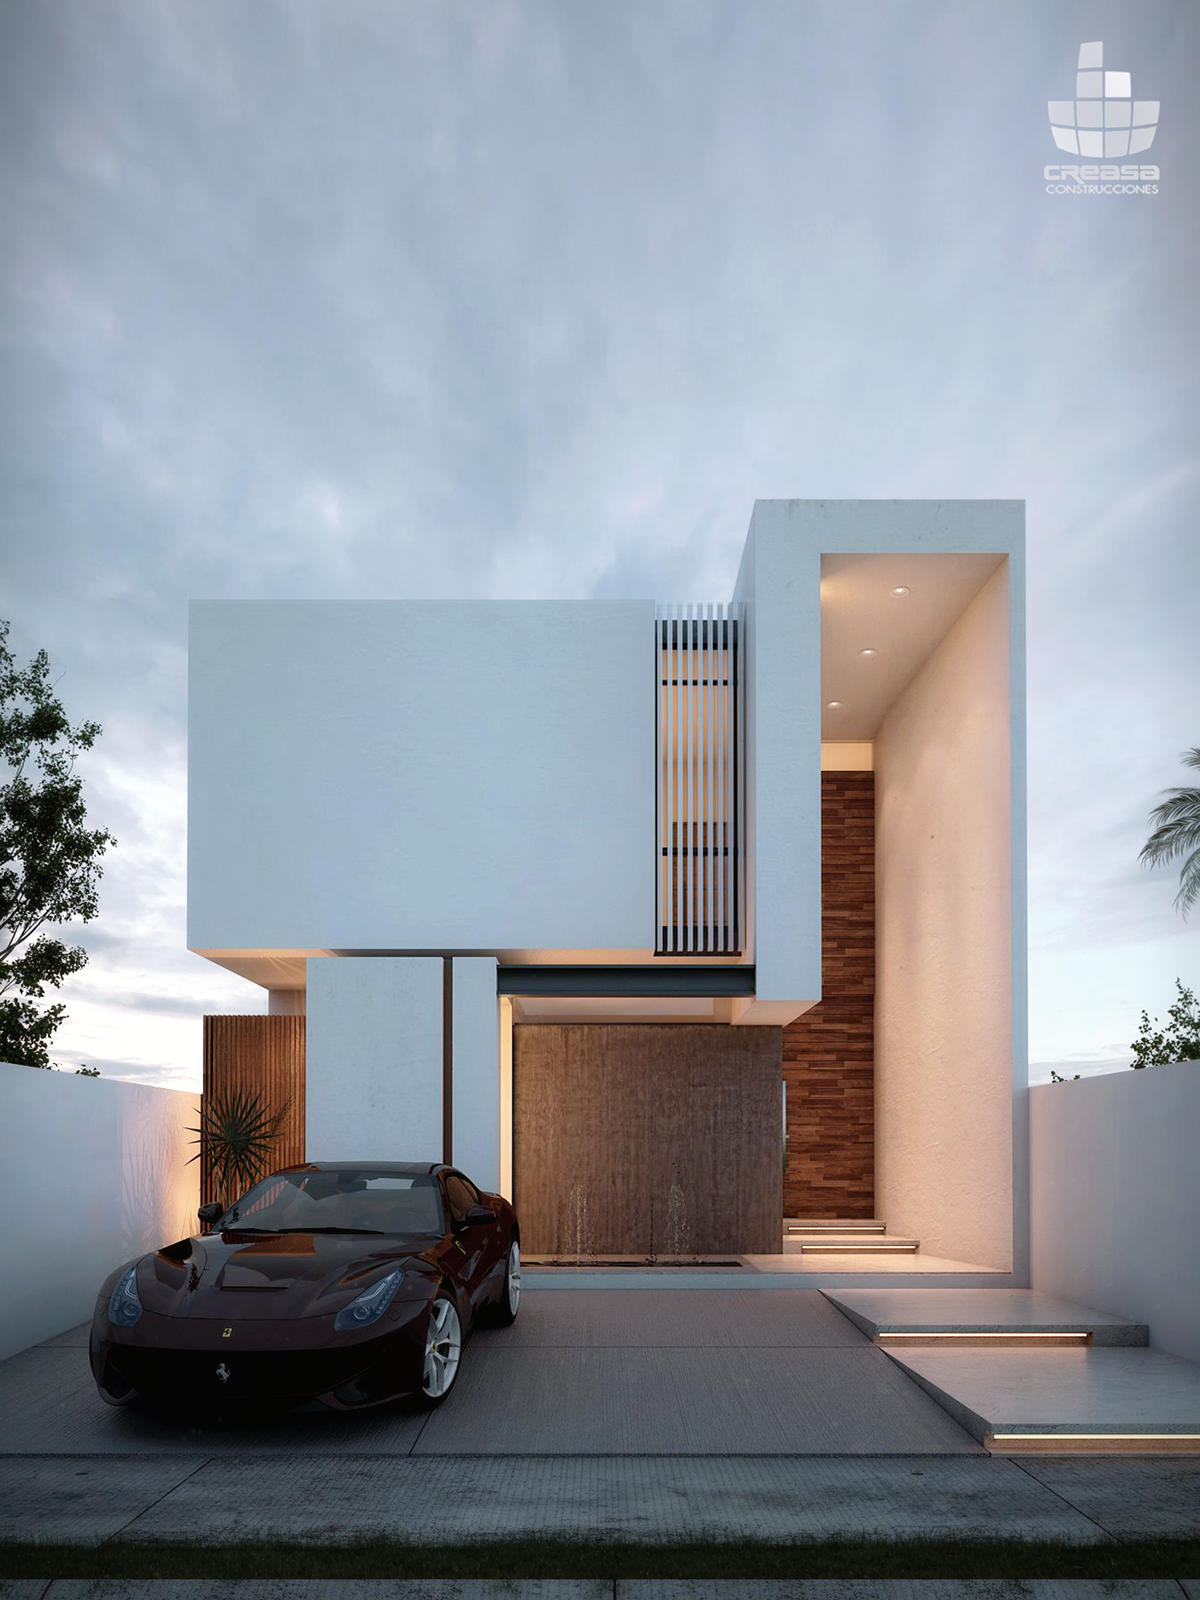 Puerta granada on behance renders arq en 2019 fachadas for Casa minimalista granada